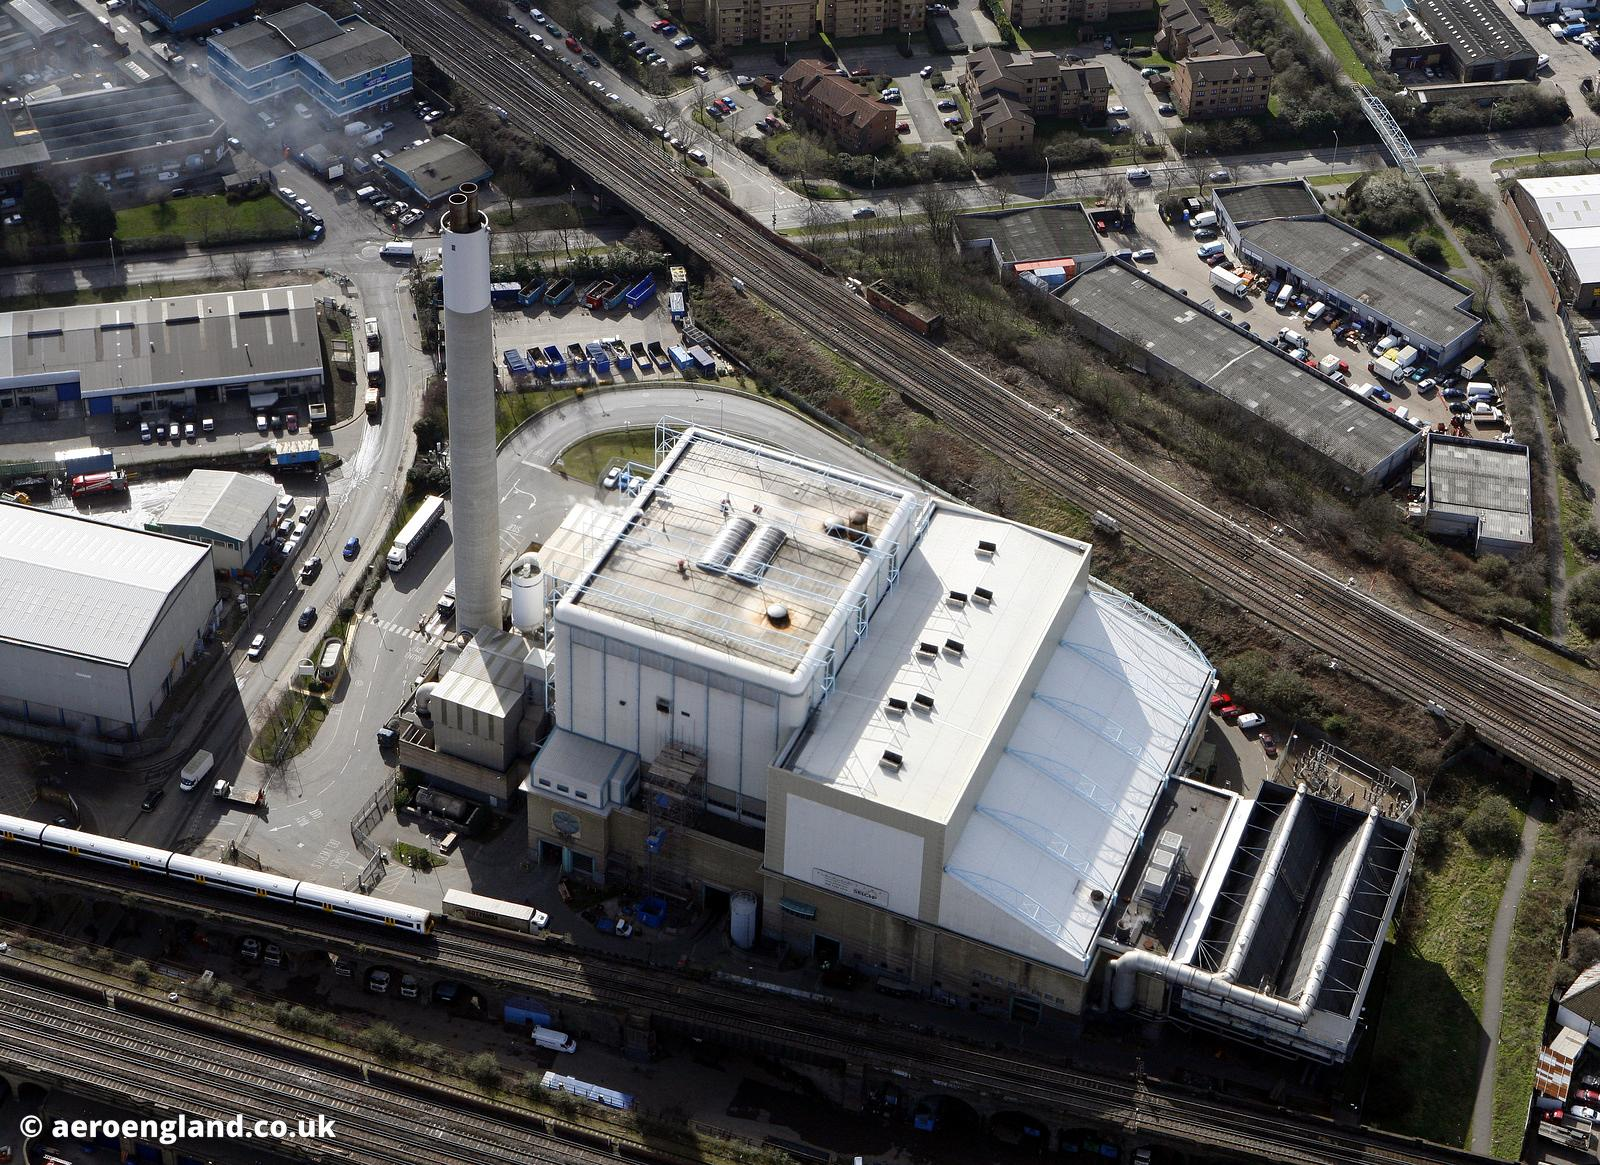 the South East London Combined heat and power ( SELCHP ) power station generates electricity by burning waste material